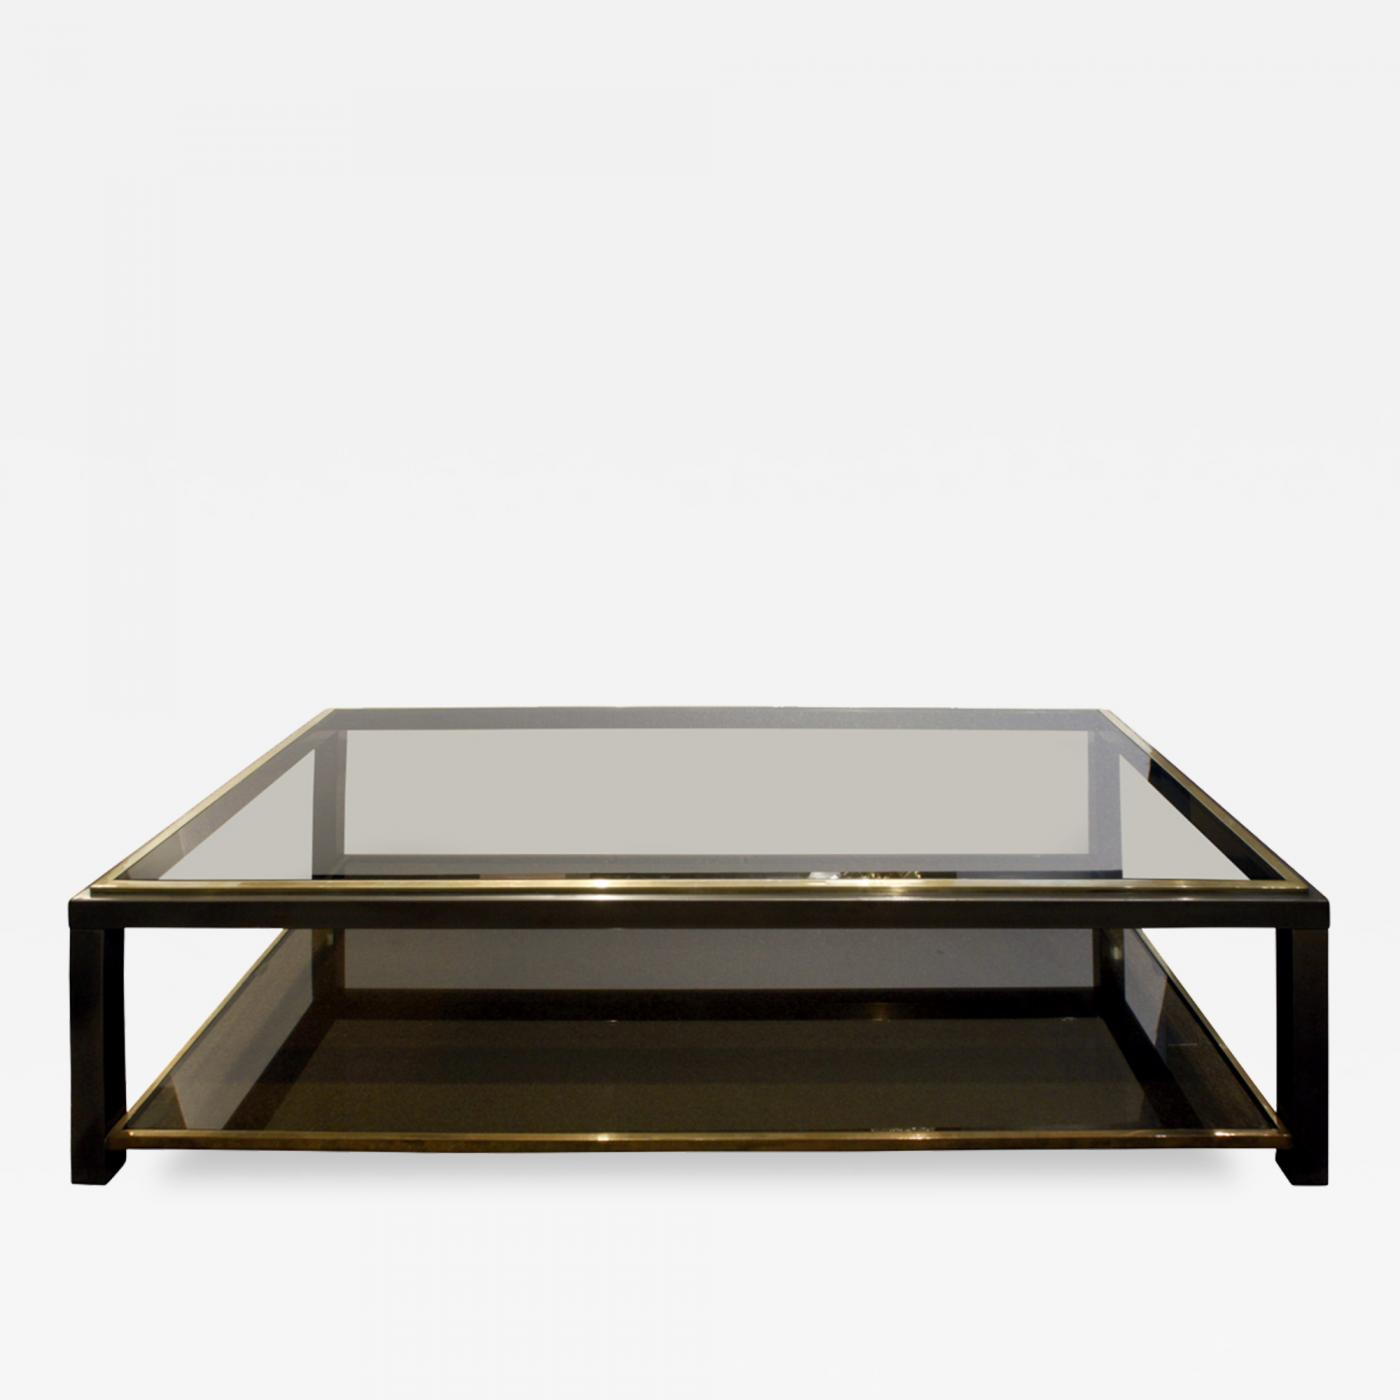 Astounding Willy Rizzo Willy Rizzo 2 Tier Coffee Table In Gunmetal And Brass 1960S Ocoug Best Dining Table And Chair Ideas Images Ocougorg